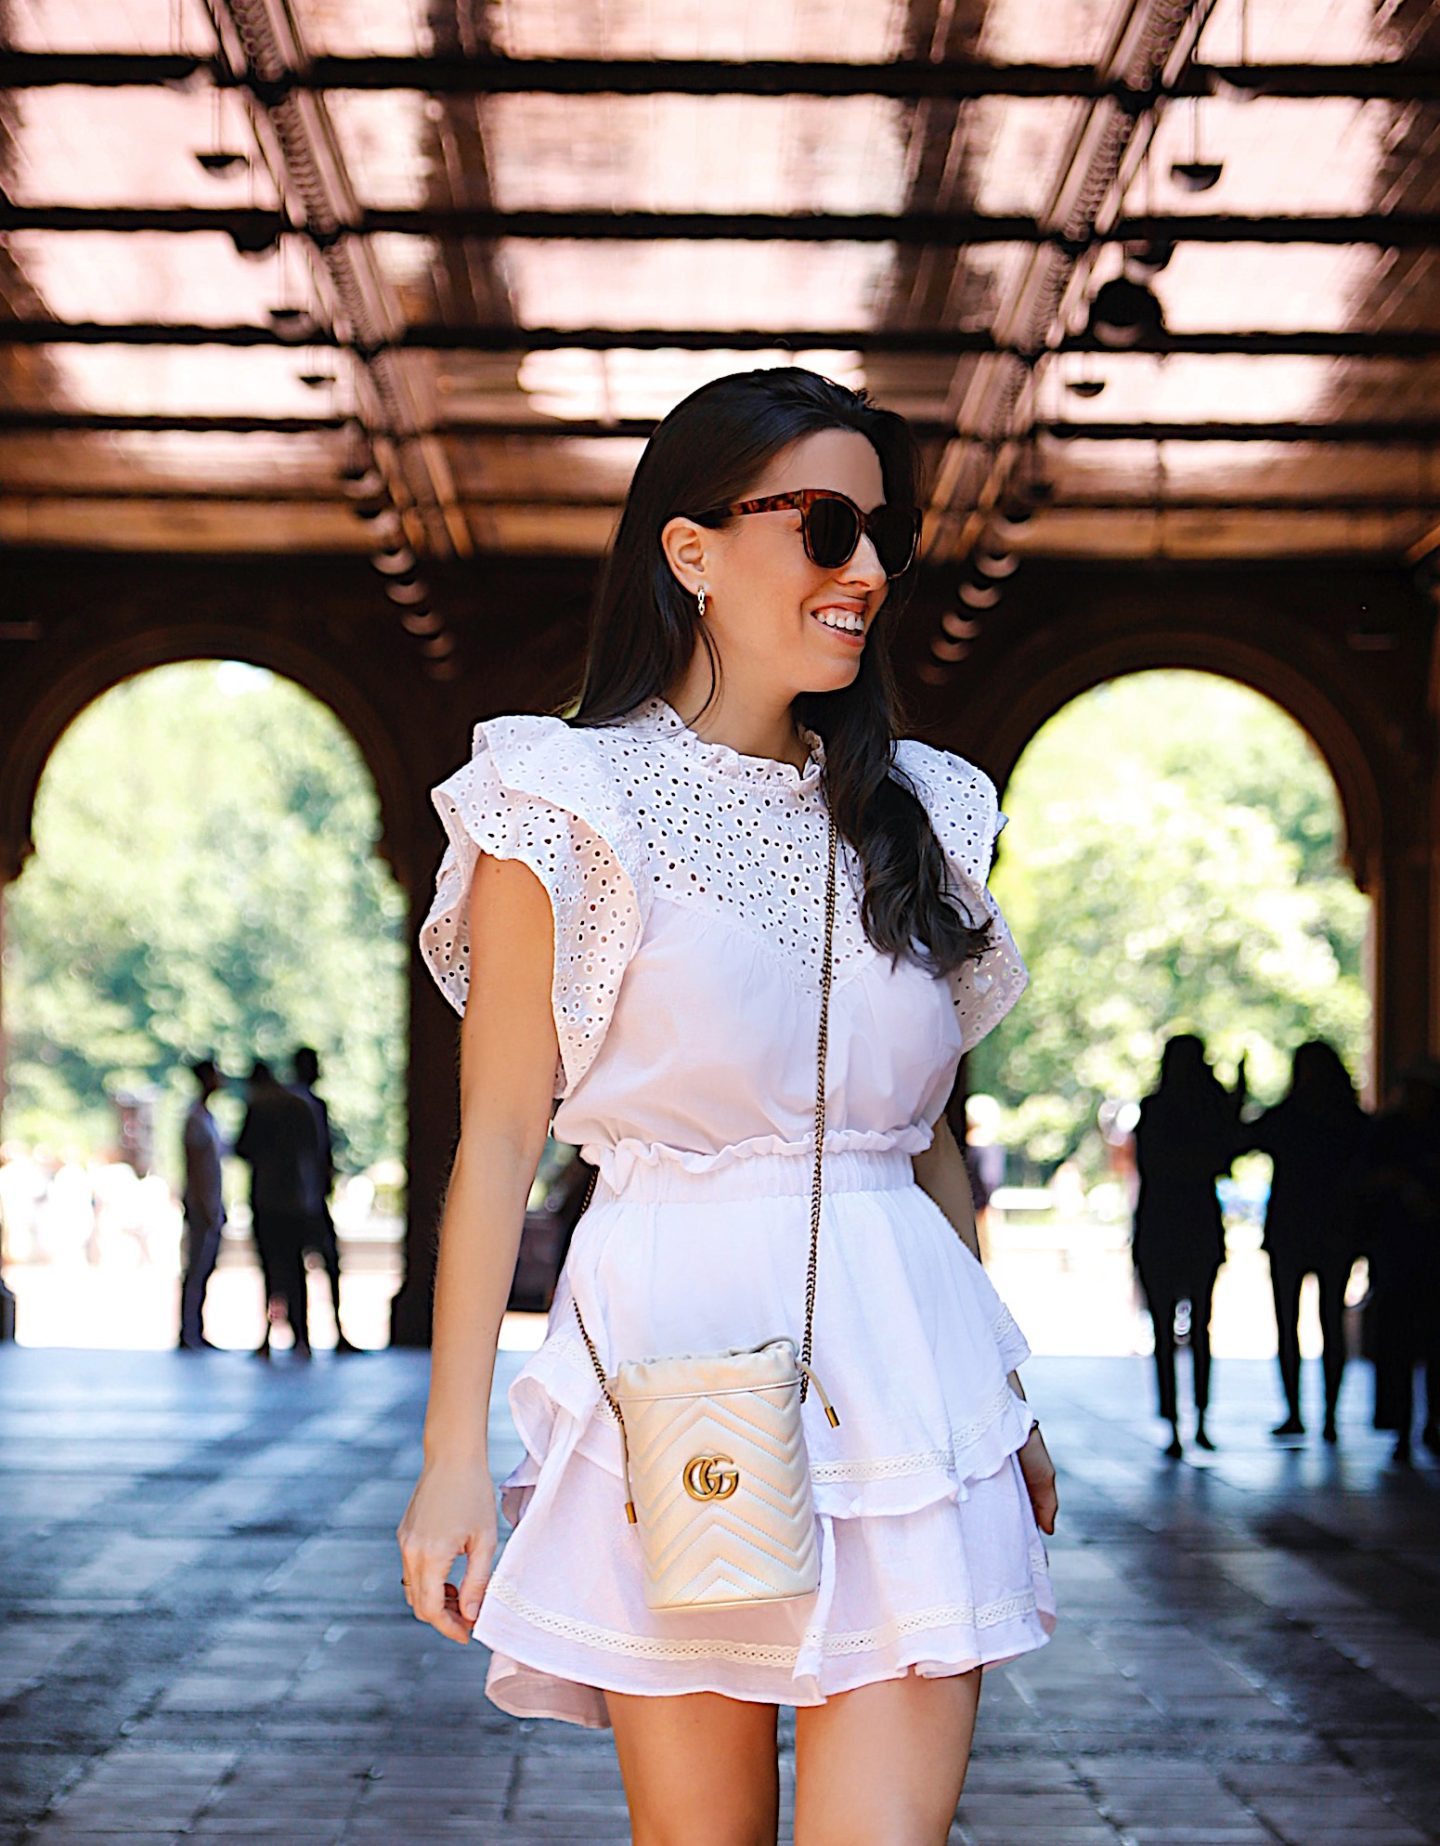 A LITTLE WHITE OUTFIT TO GET THE WEEKEND STARTED